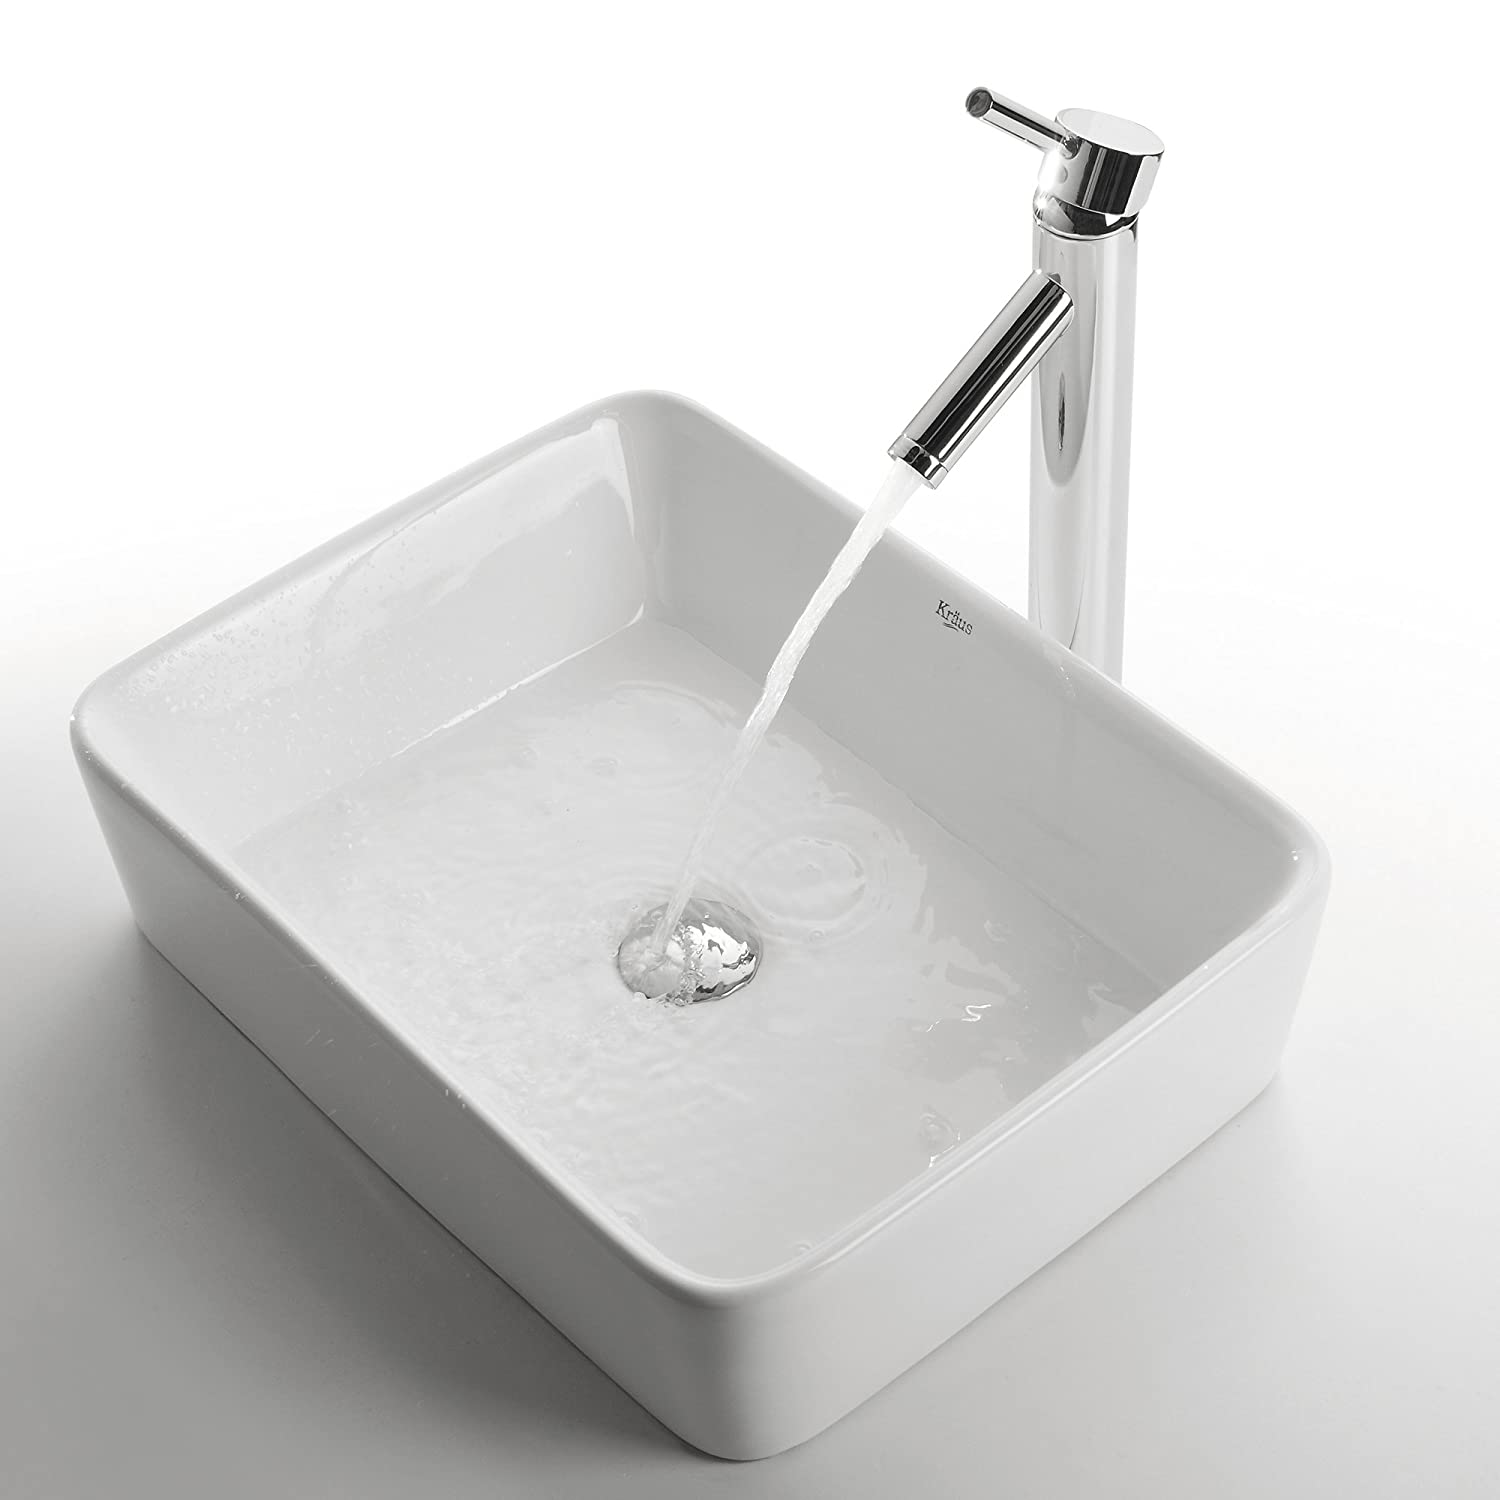 Kraus KCV 121 CH White Rectangular Ceramic Bathroom Sink With Pop Up Drain  Chrome   Bathroom Sink And Tub Drain Strainers   Amazon.com